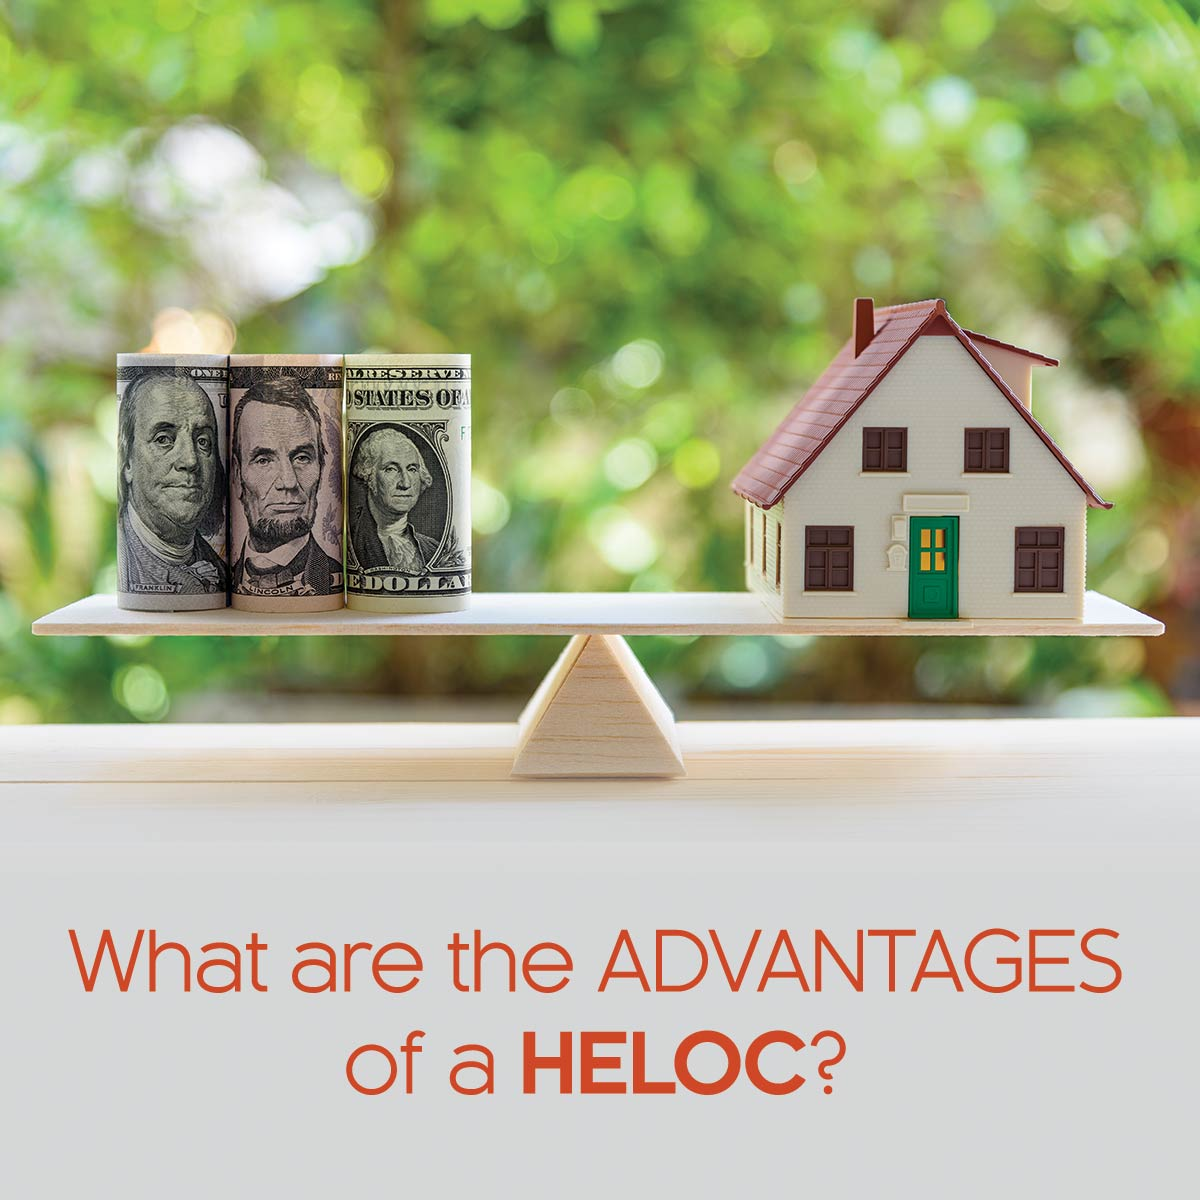 What are the Advantages of a HELOC?